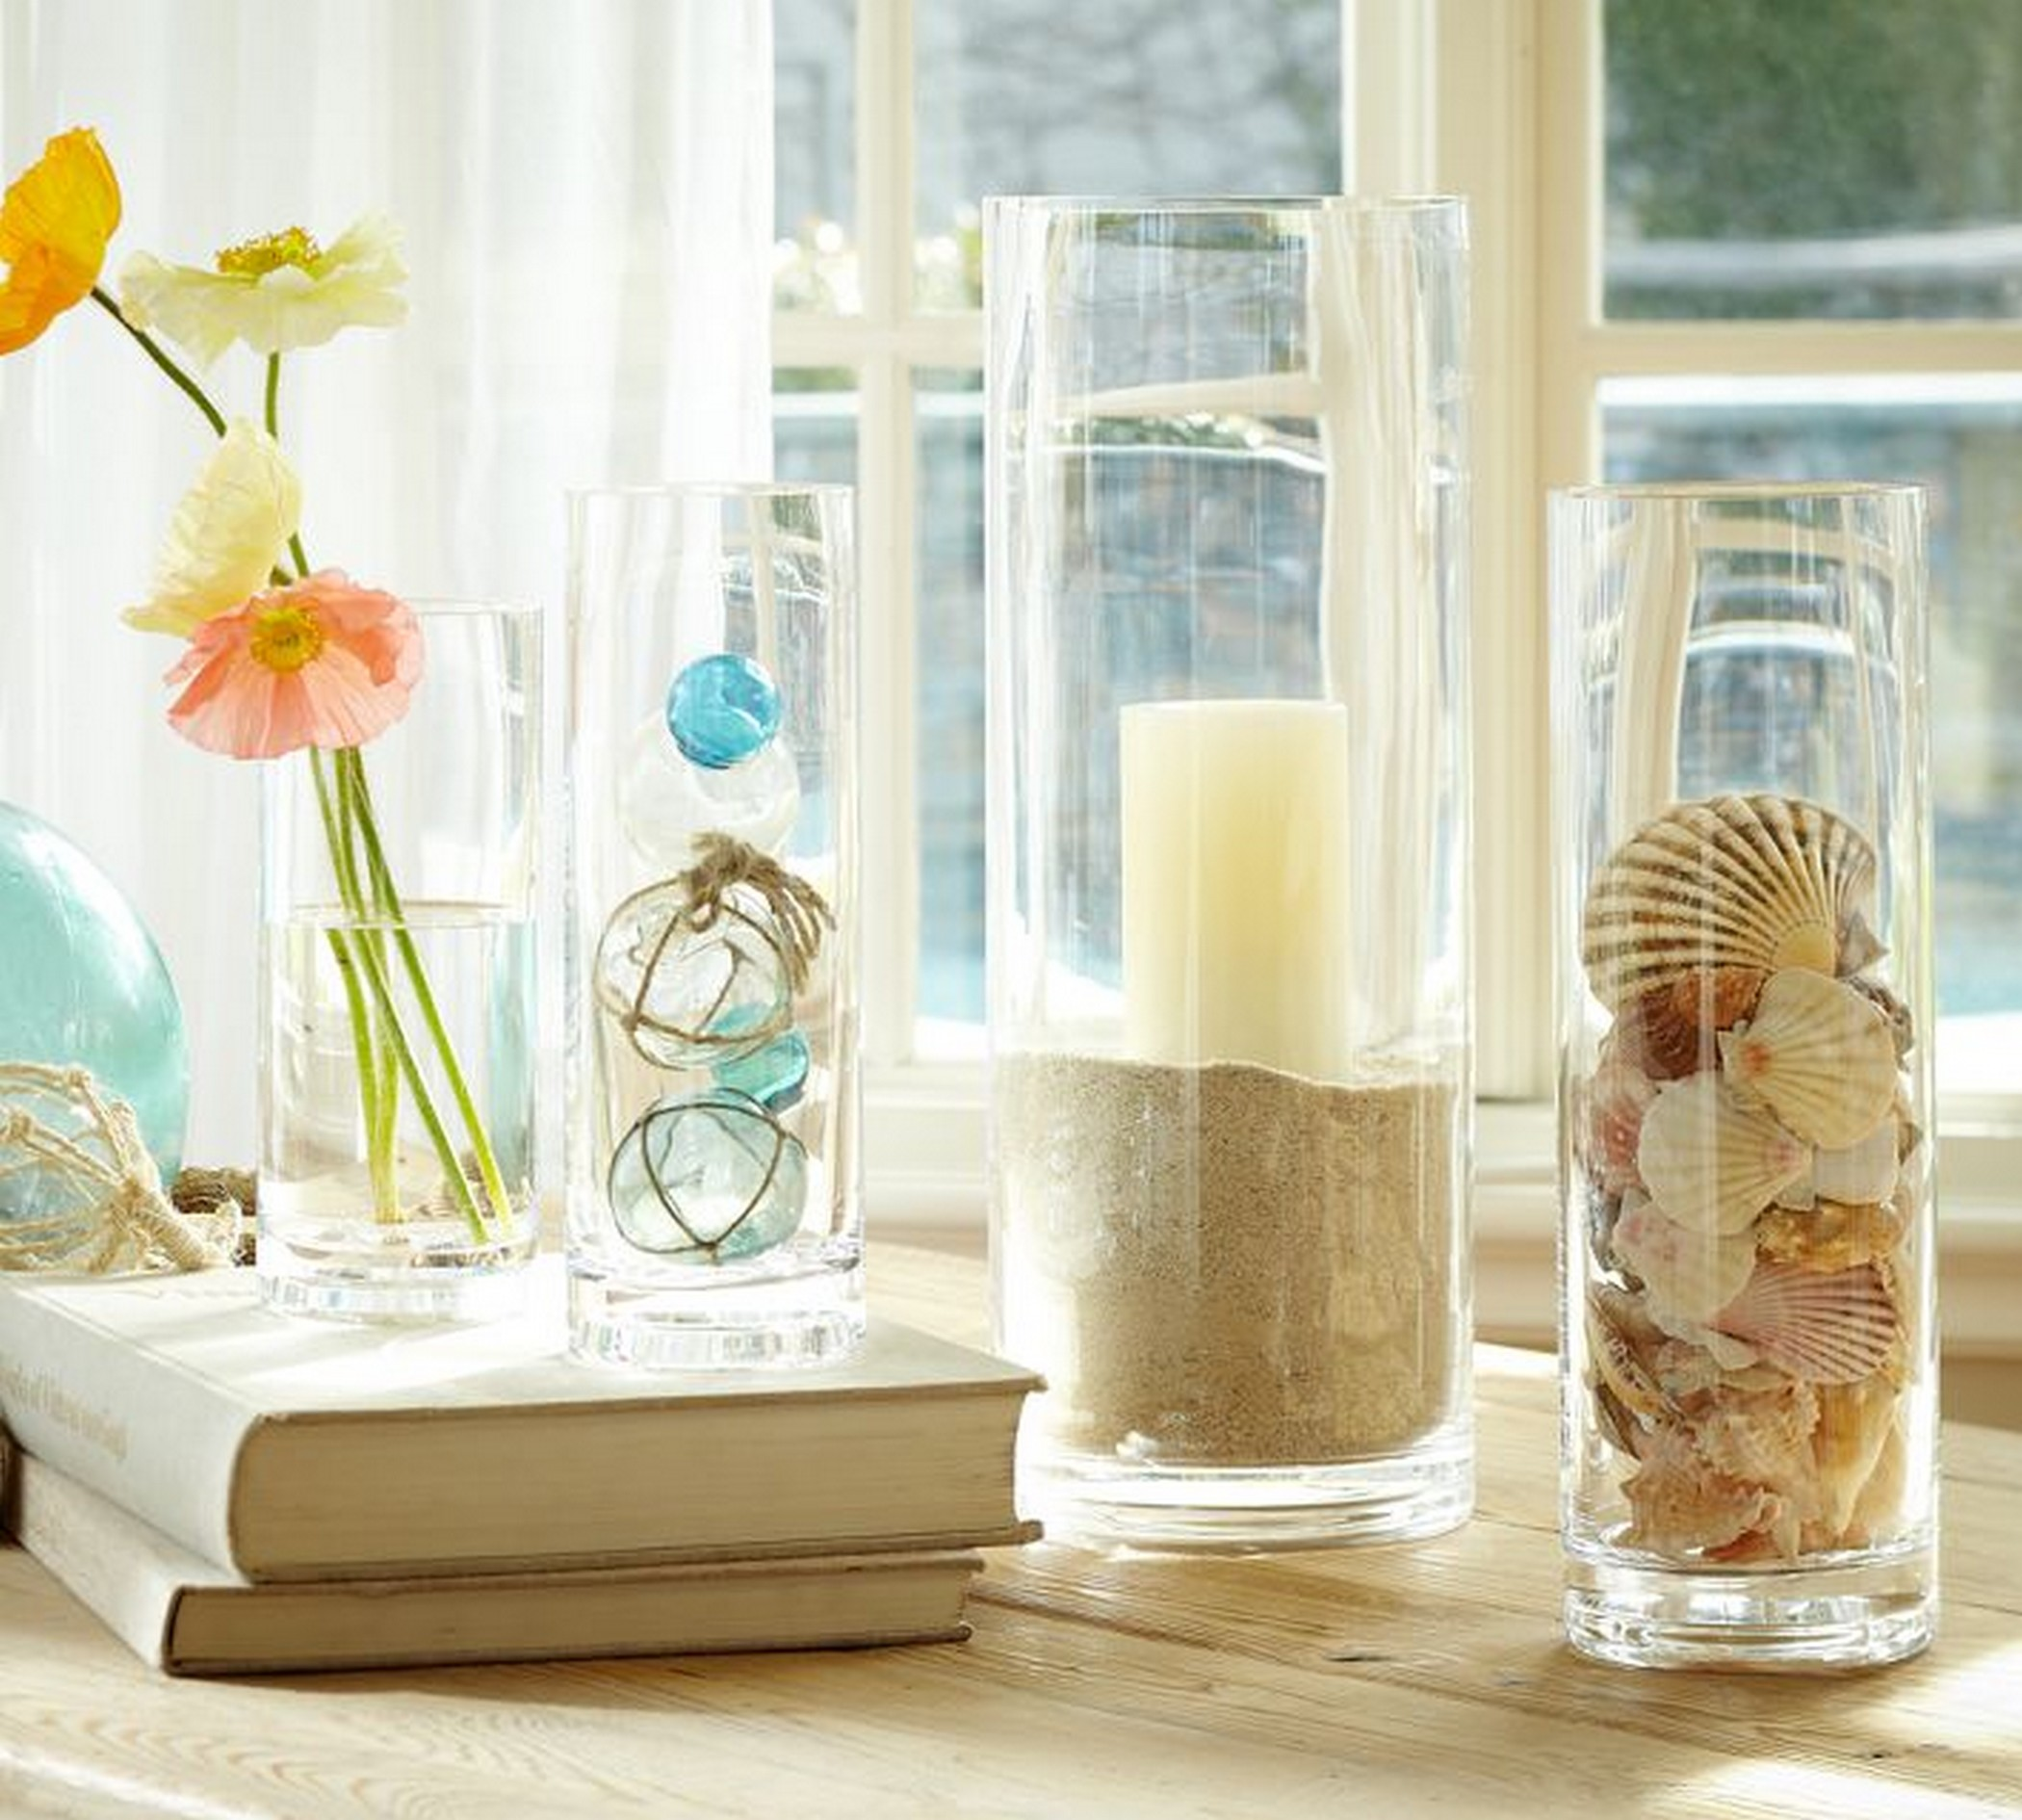 summer decoration ideas with glass vase fillers and white curtains - Декор ваз своими руками: 7 свежих идей